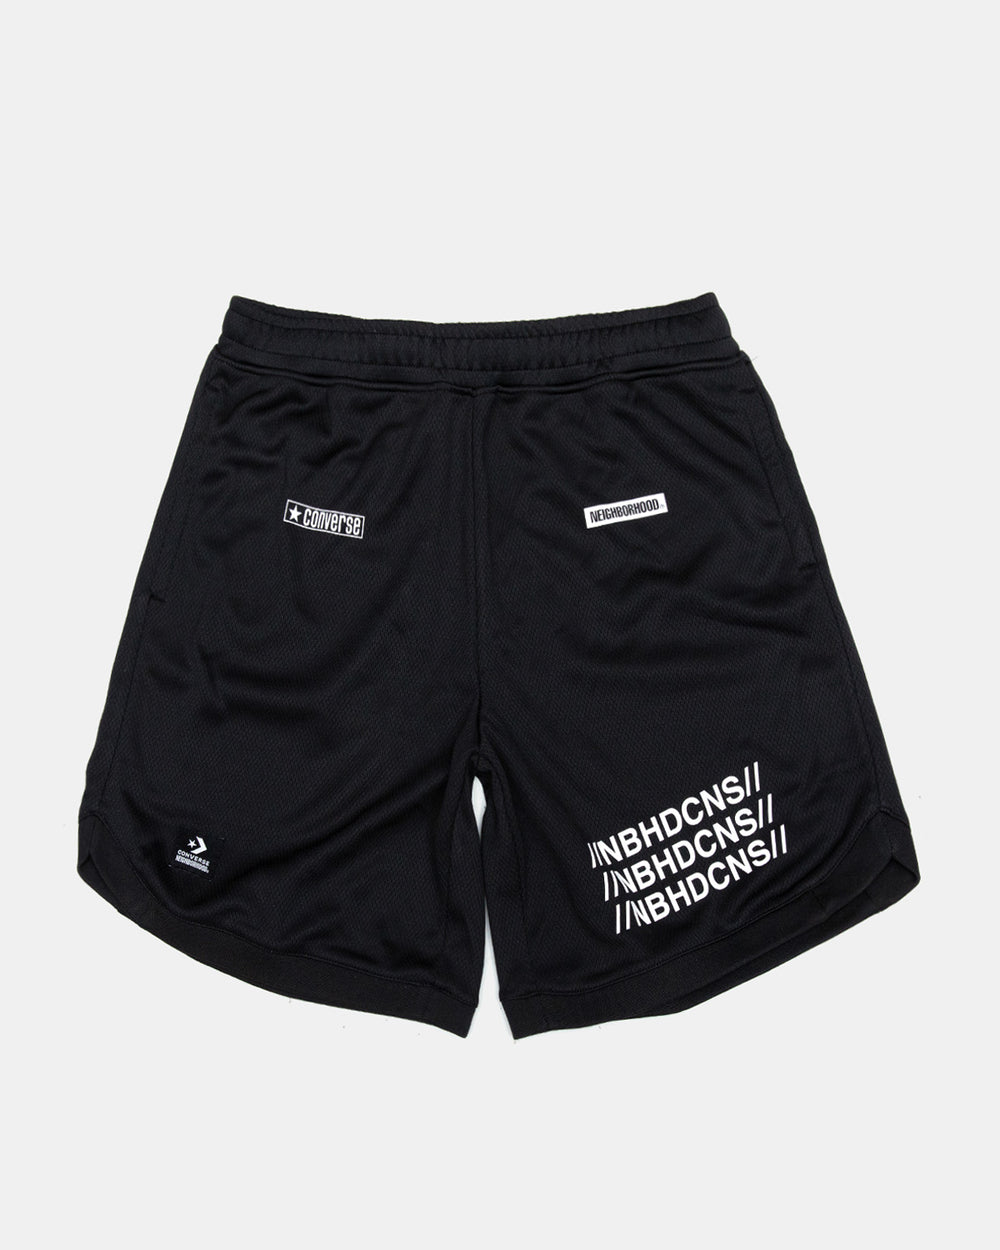 Converse - Converse x Neighborhood Shorts (Black)